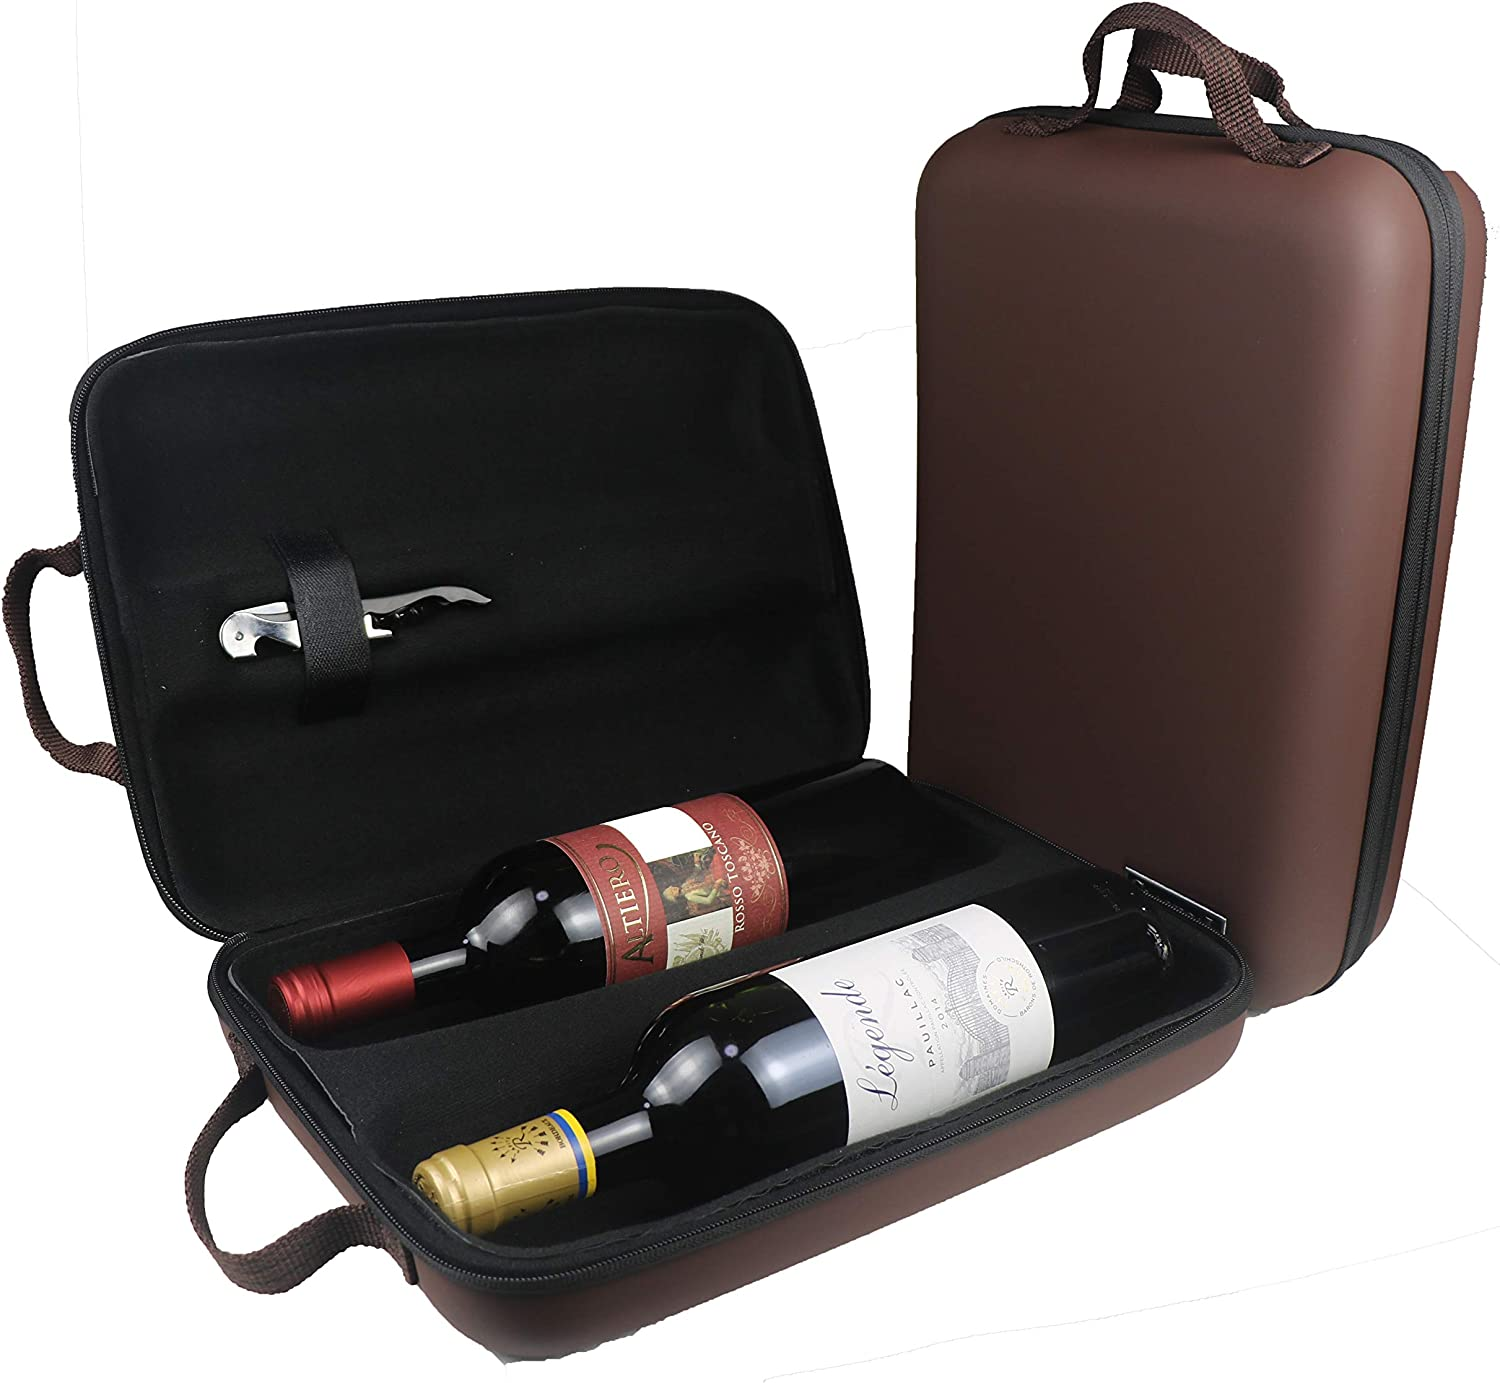 Wine Bottle Travel Bag for 2 Bottles of Wine- Shockproof & Waterproof Protective EVA Hard Carrier Tote Case Carrying Shell Pouch